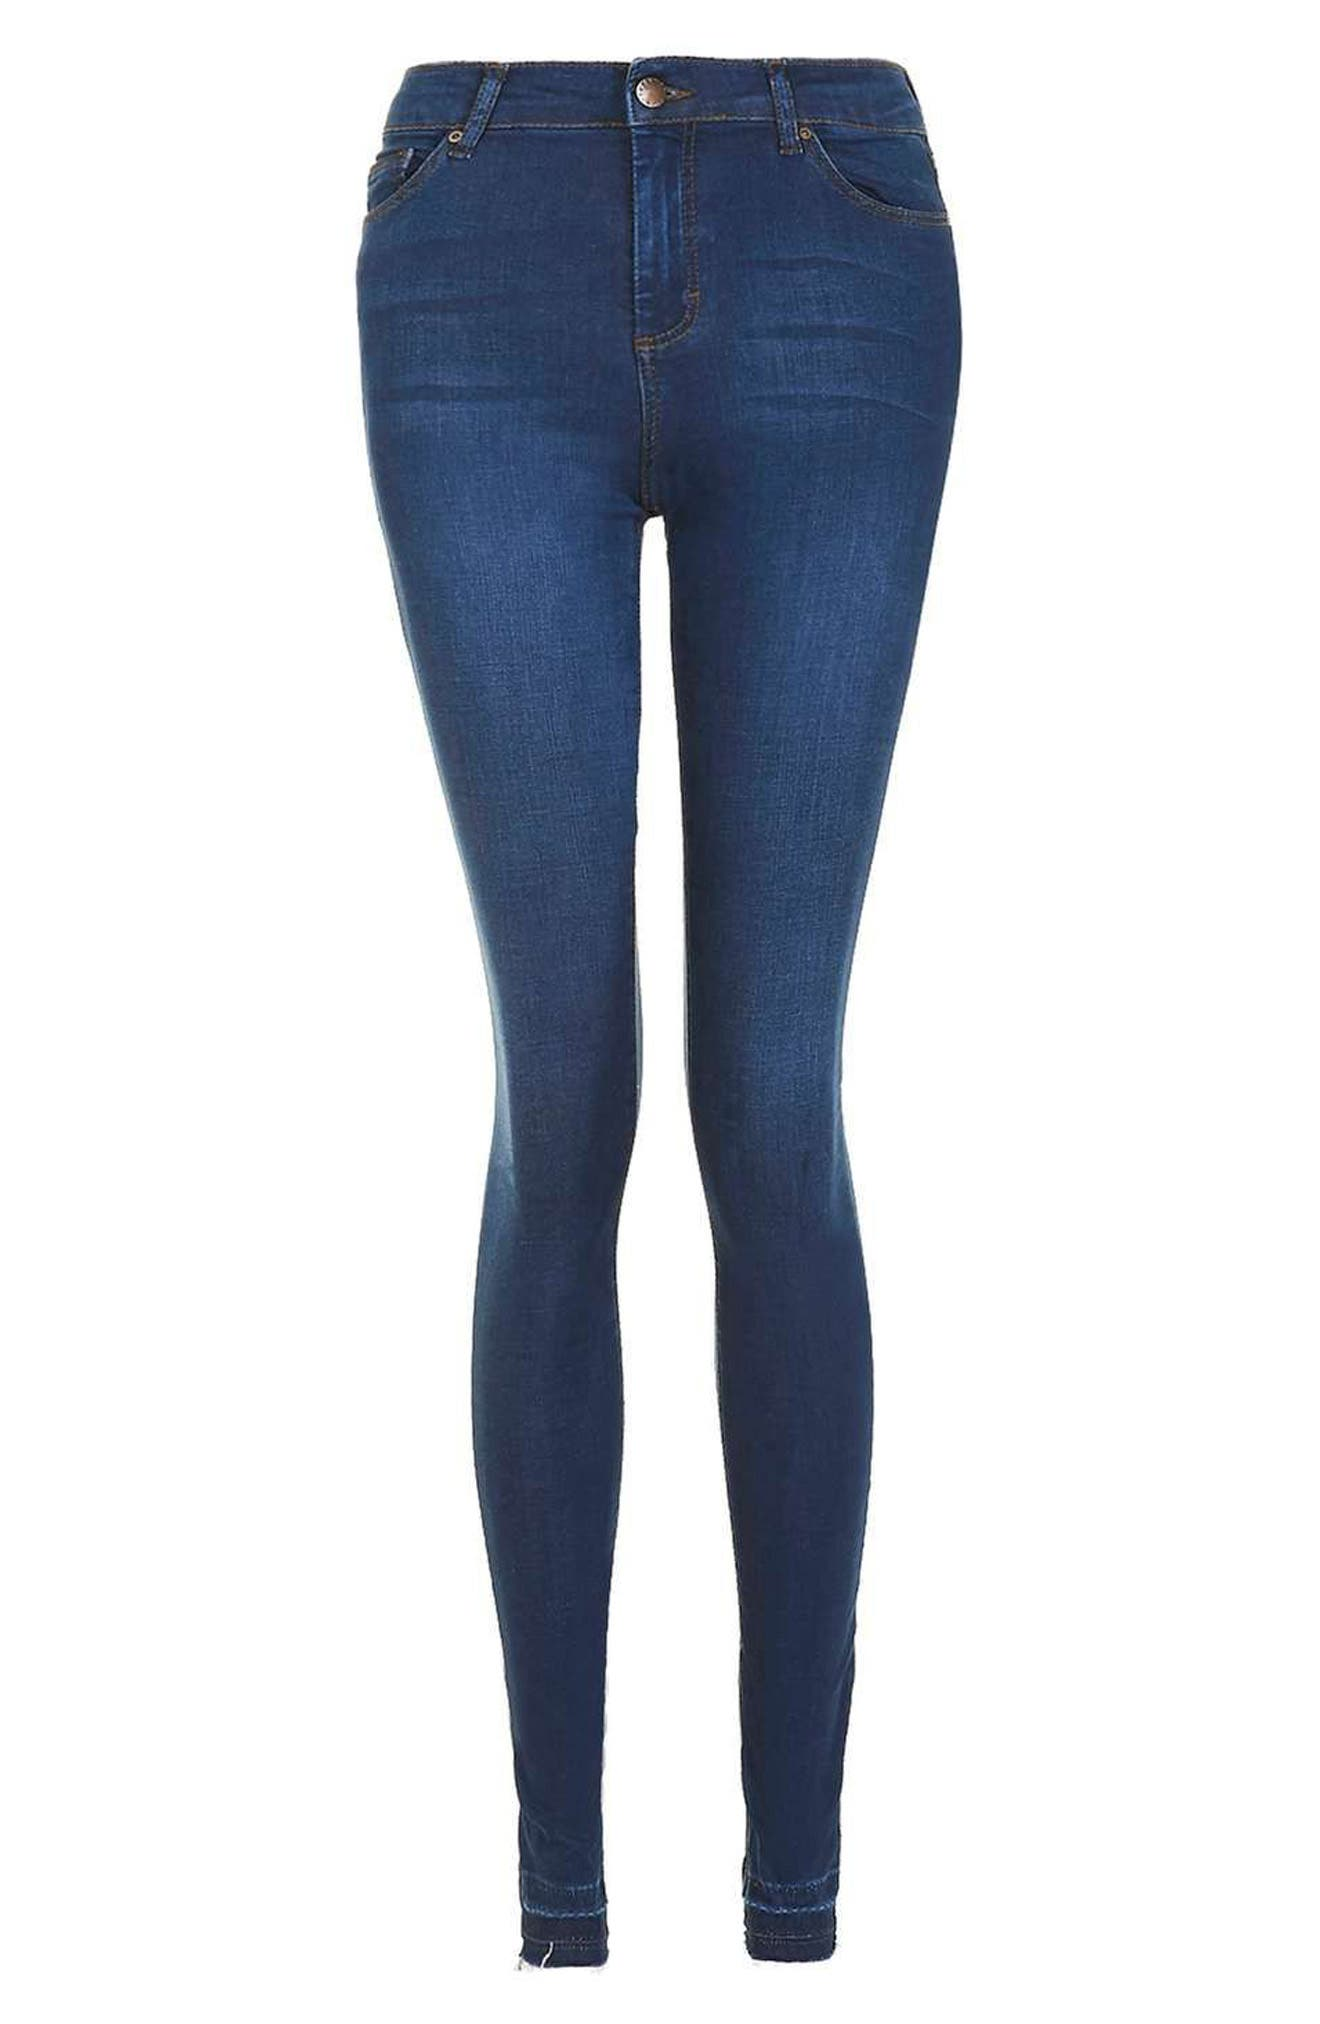 Leigh Release Hem Skinny Jeans,                             Alternate thumbnail 3, color,                             Indigo